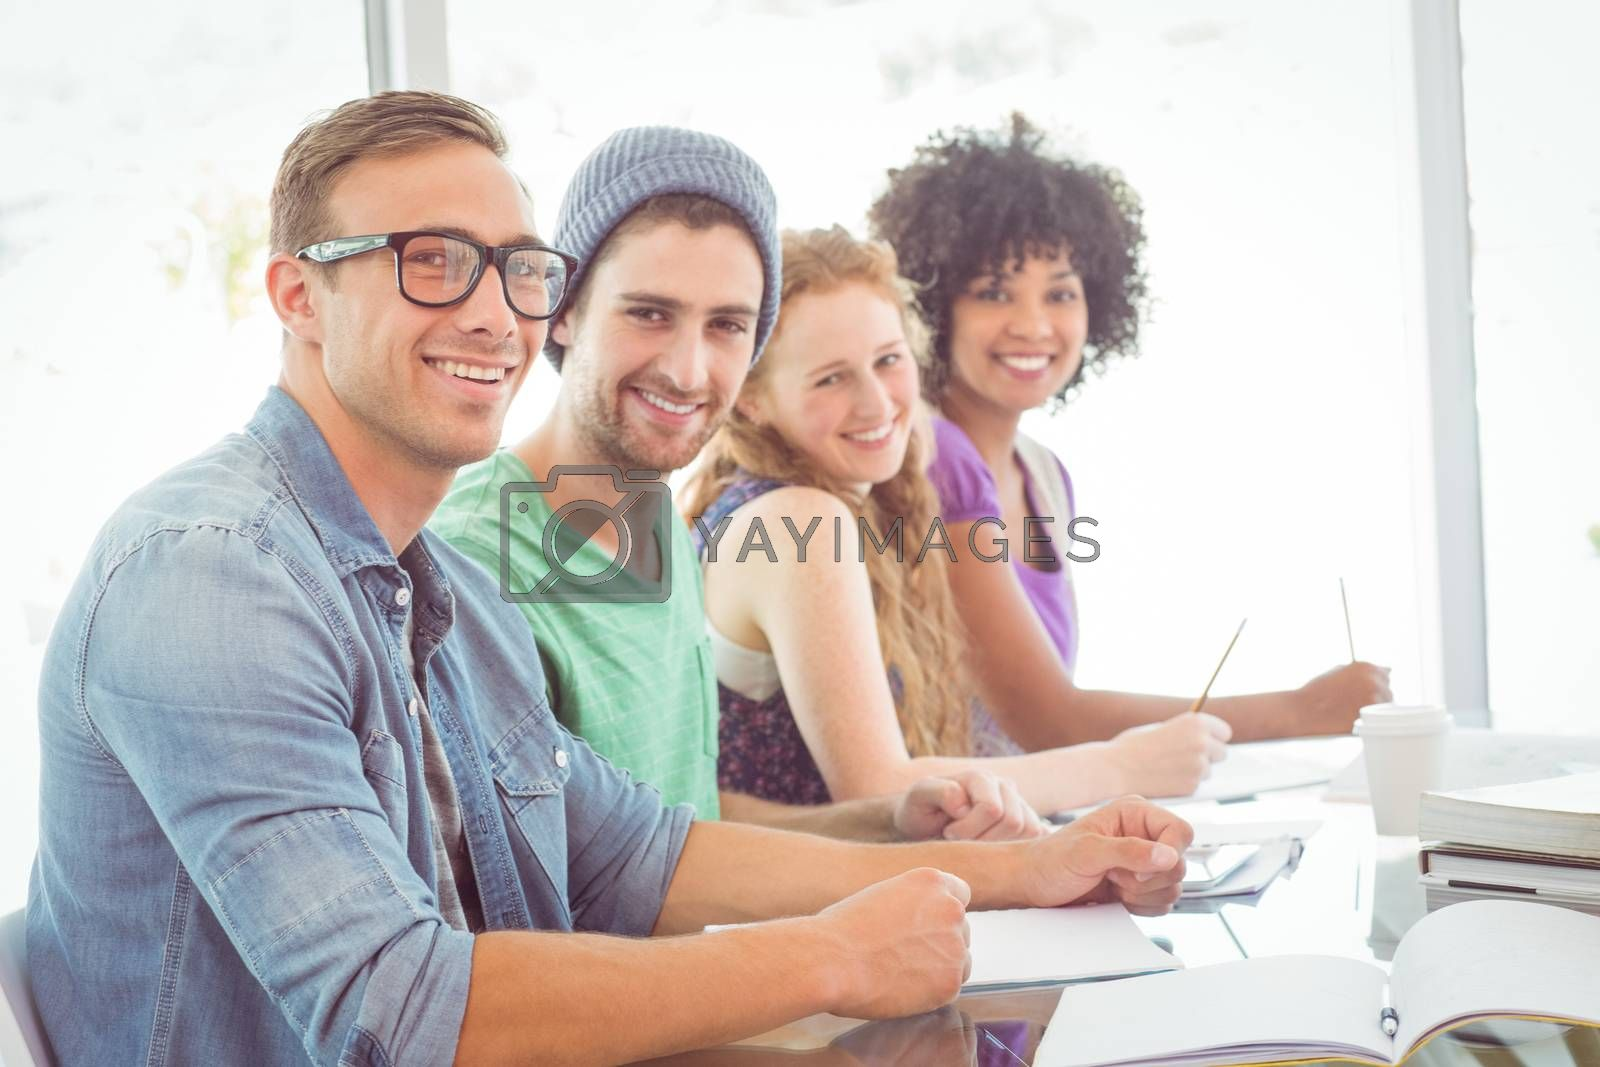 Fashion students smiling at camera at the college